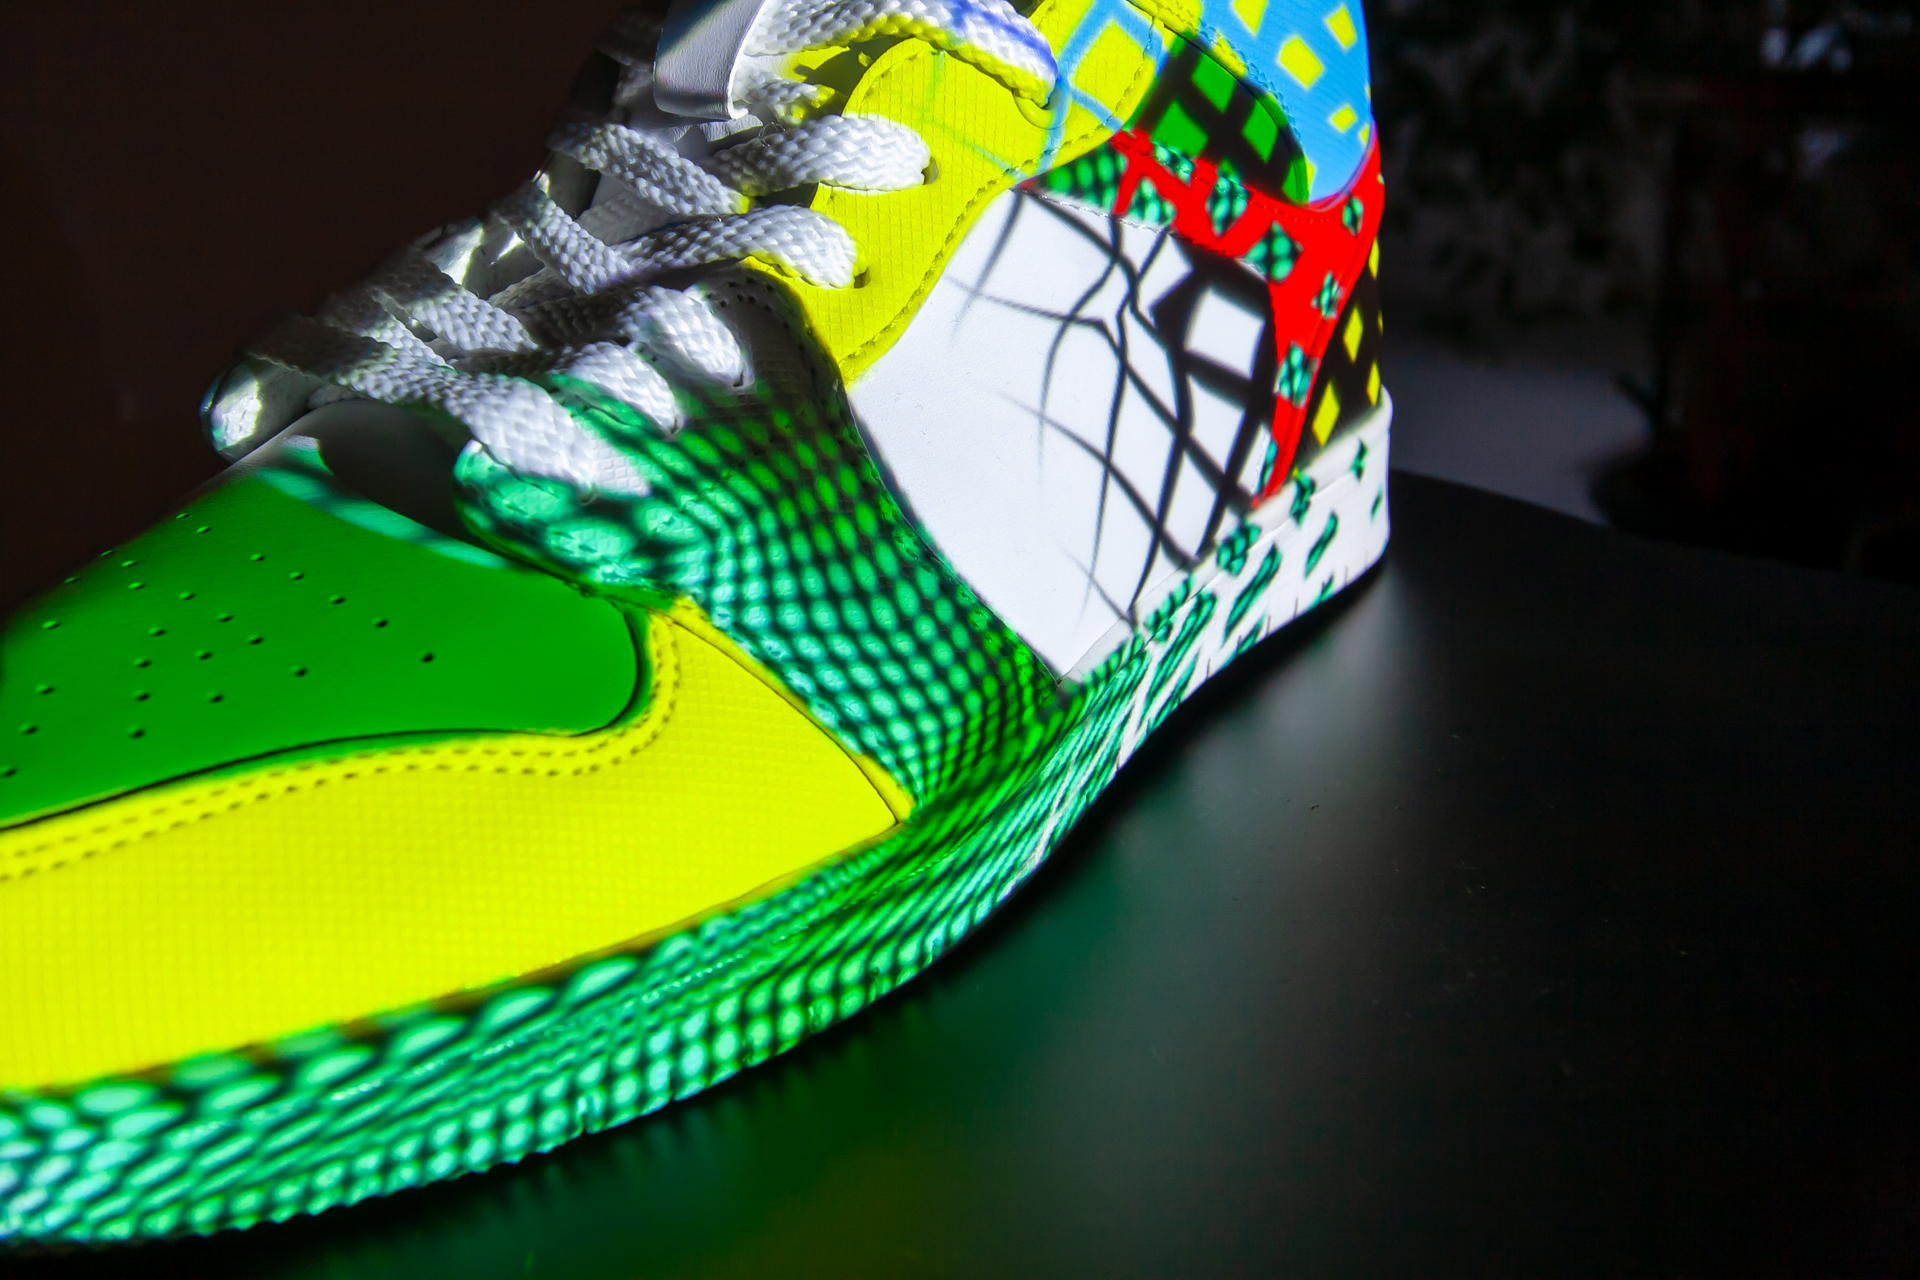 Sneaker_Vase_Projection_pong_li_6